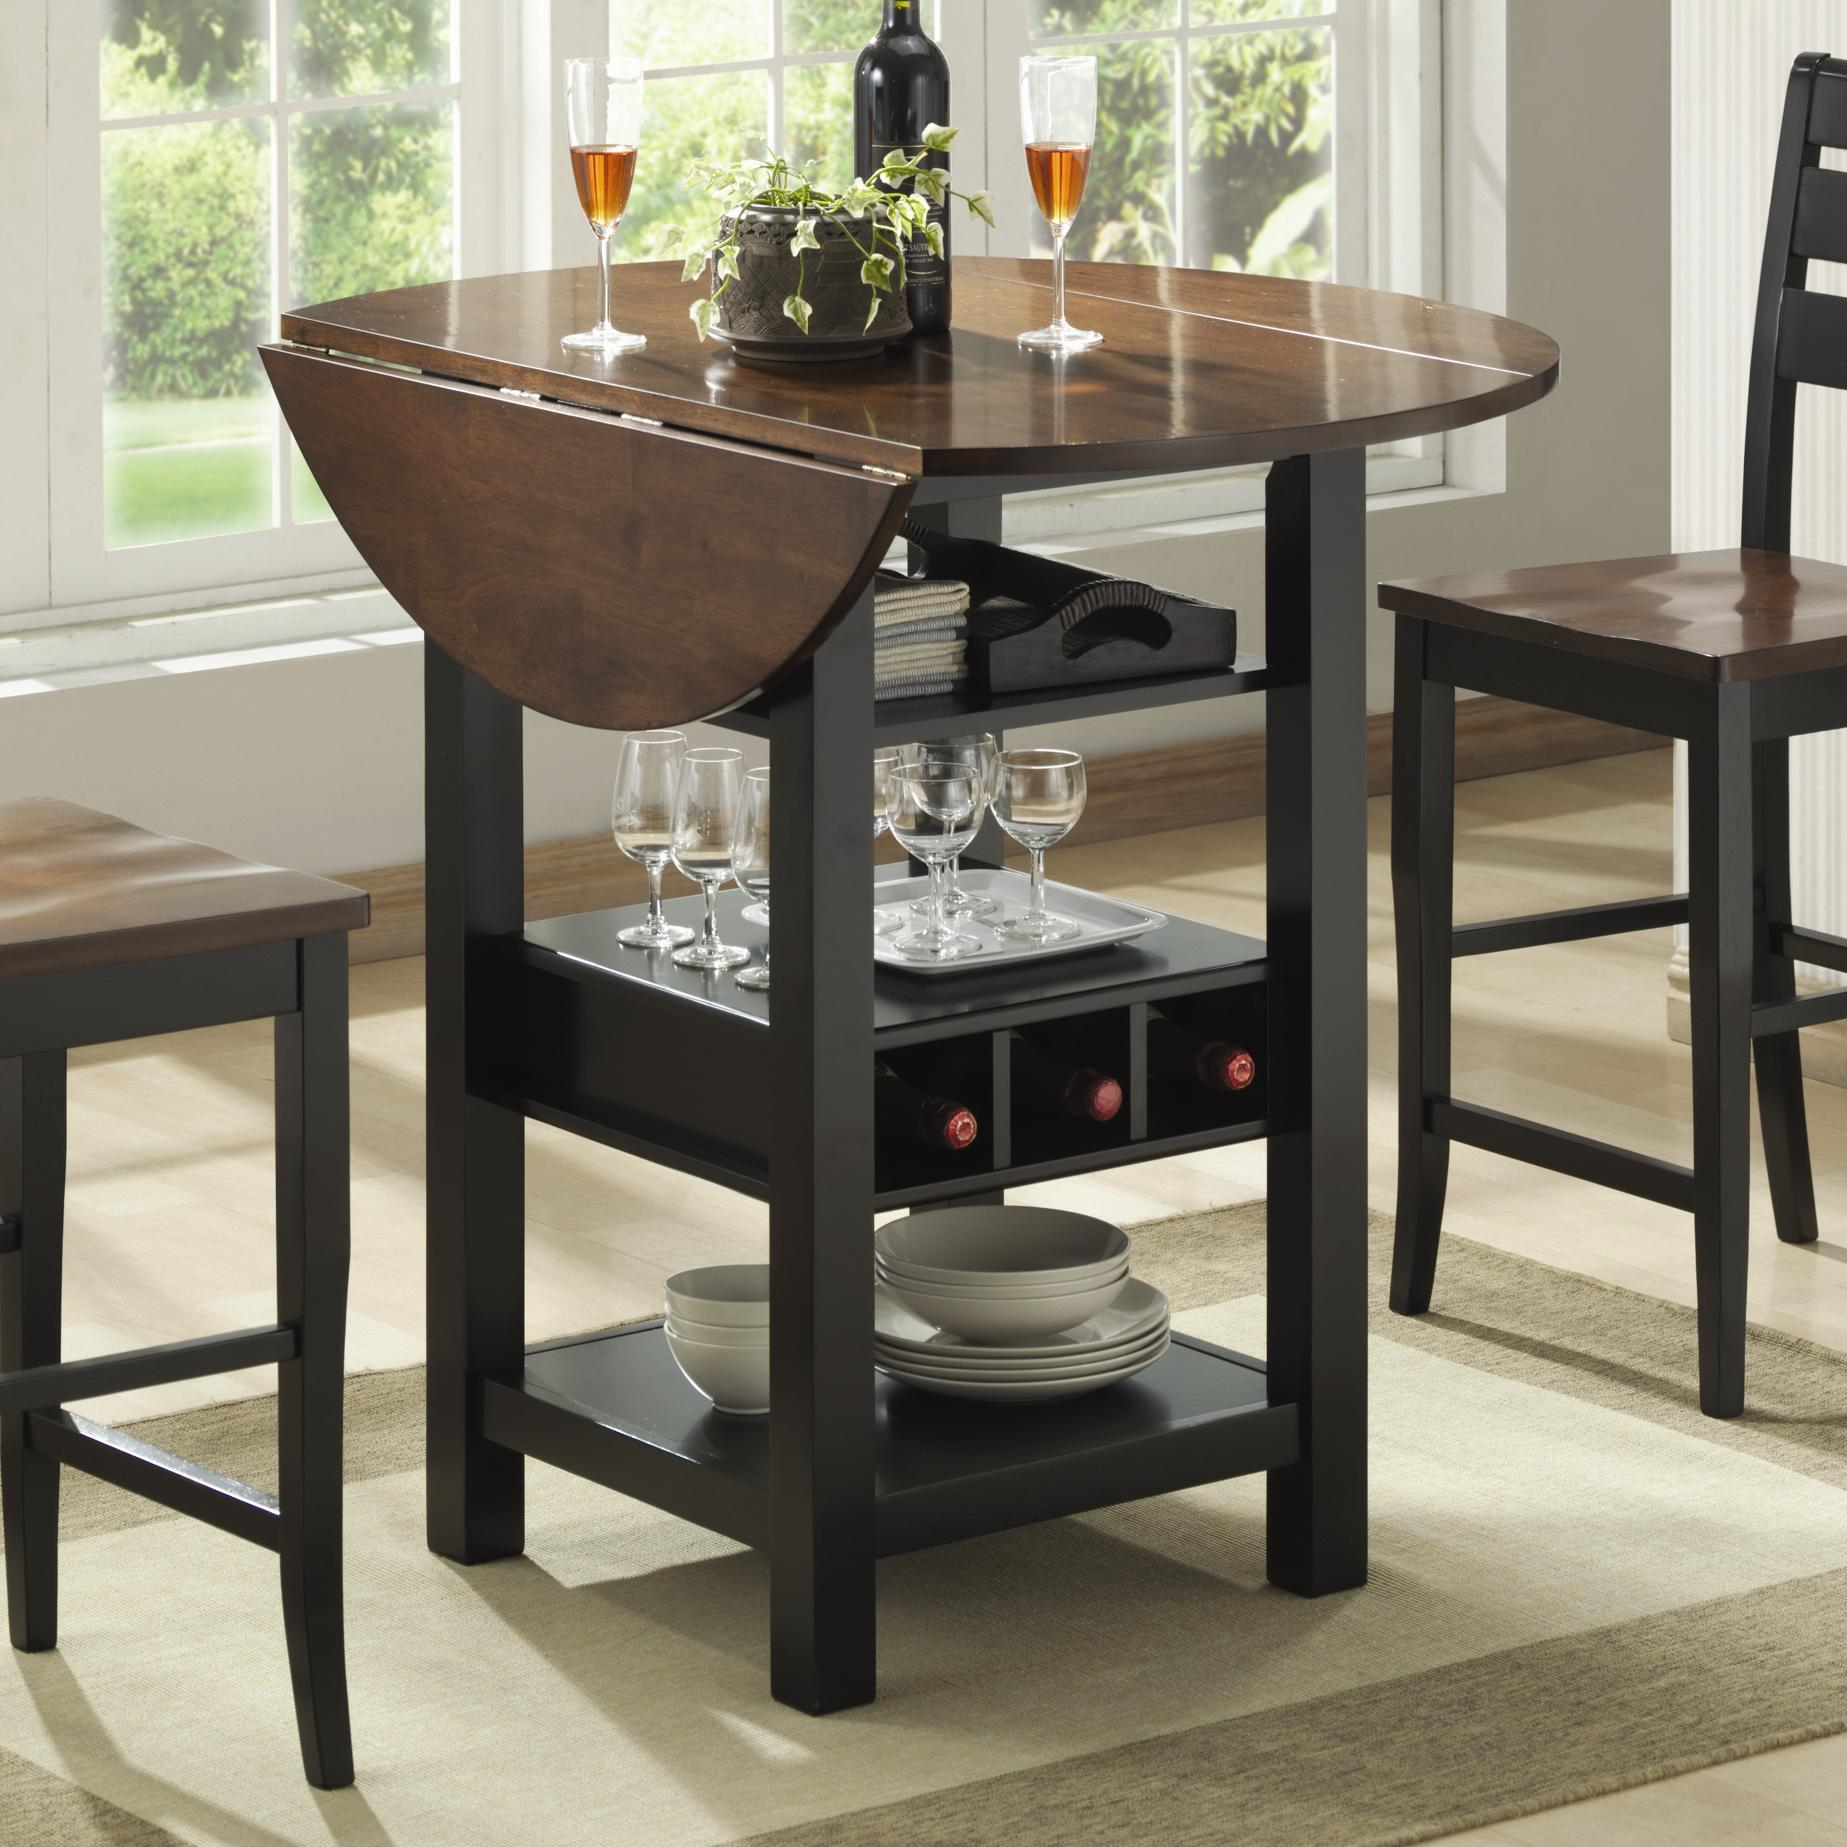 Bernards Ridgewood Drop Leaf Pub Table With Wine Rack